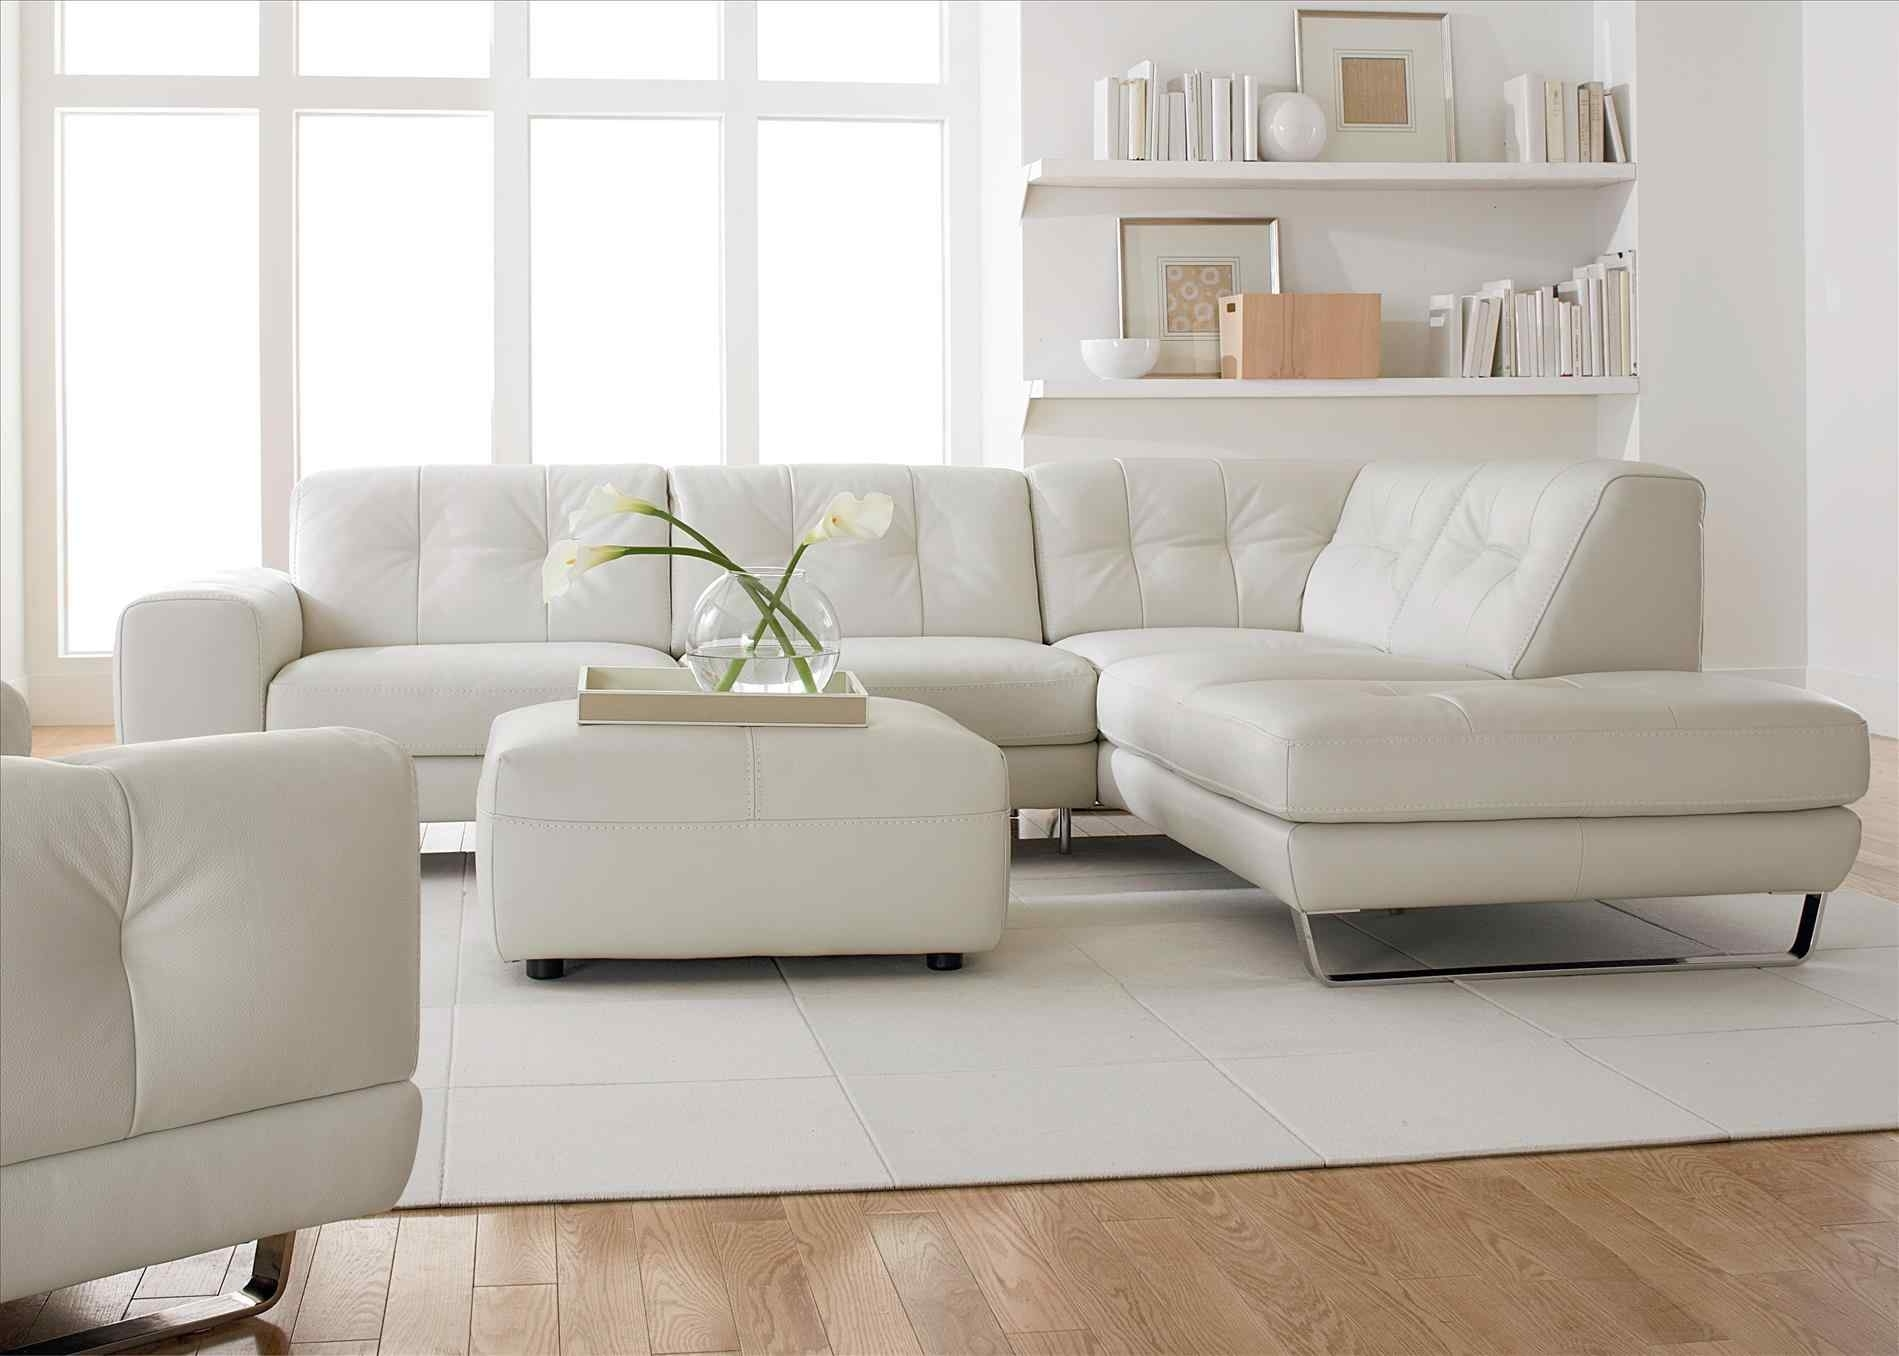 Off White Leather Sofa And Loveseat – Nrhcares Intended For Off White Leather Sofas (View 9 of 10)